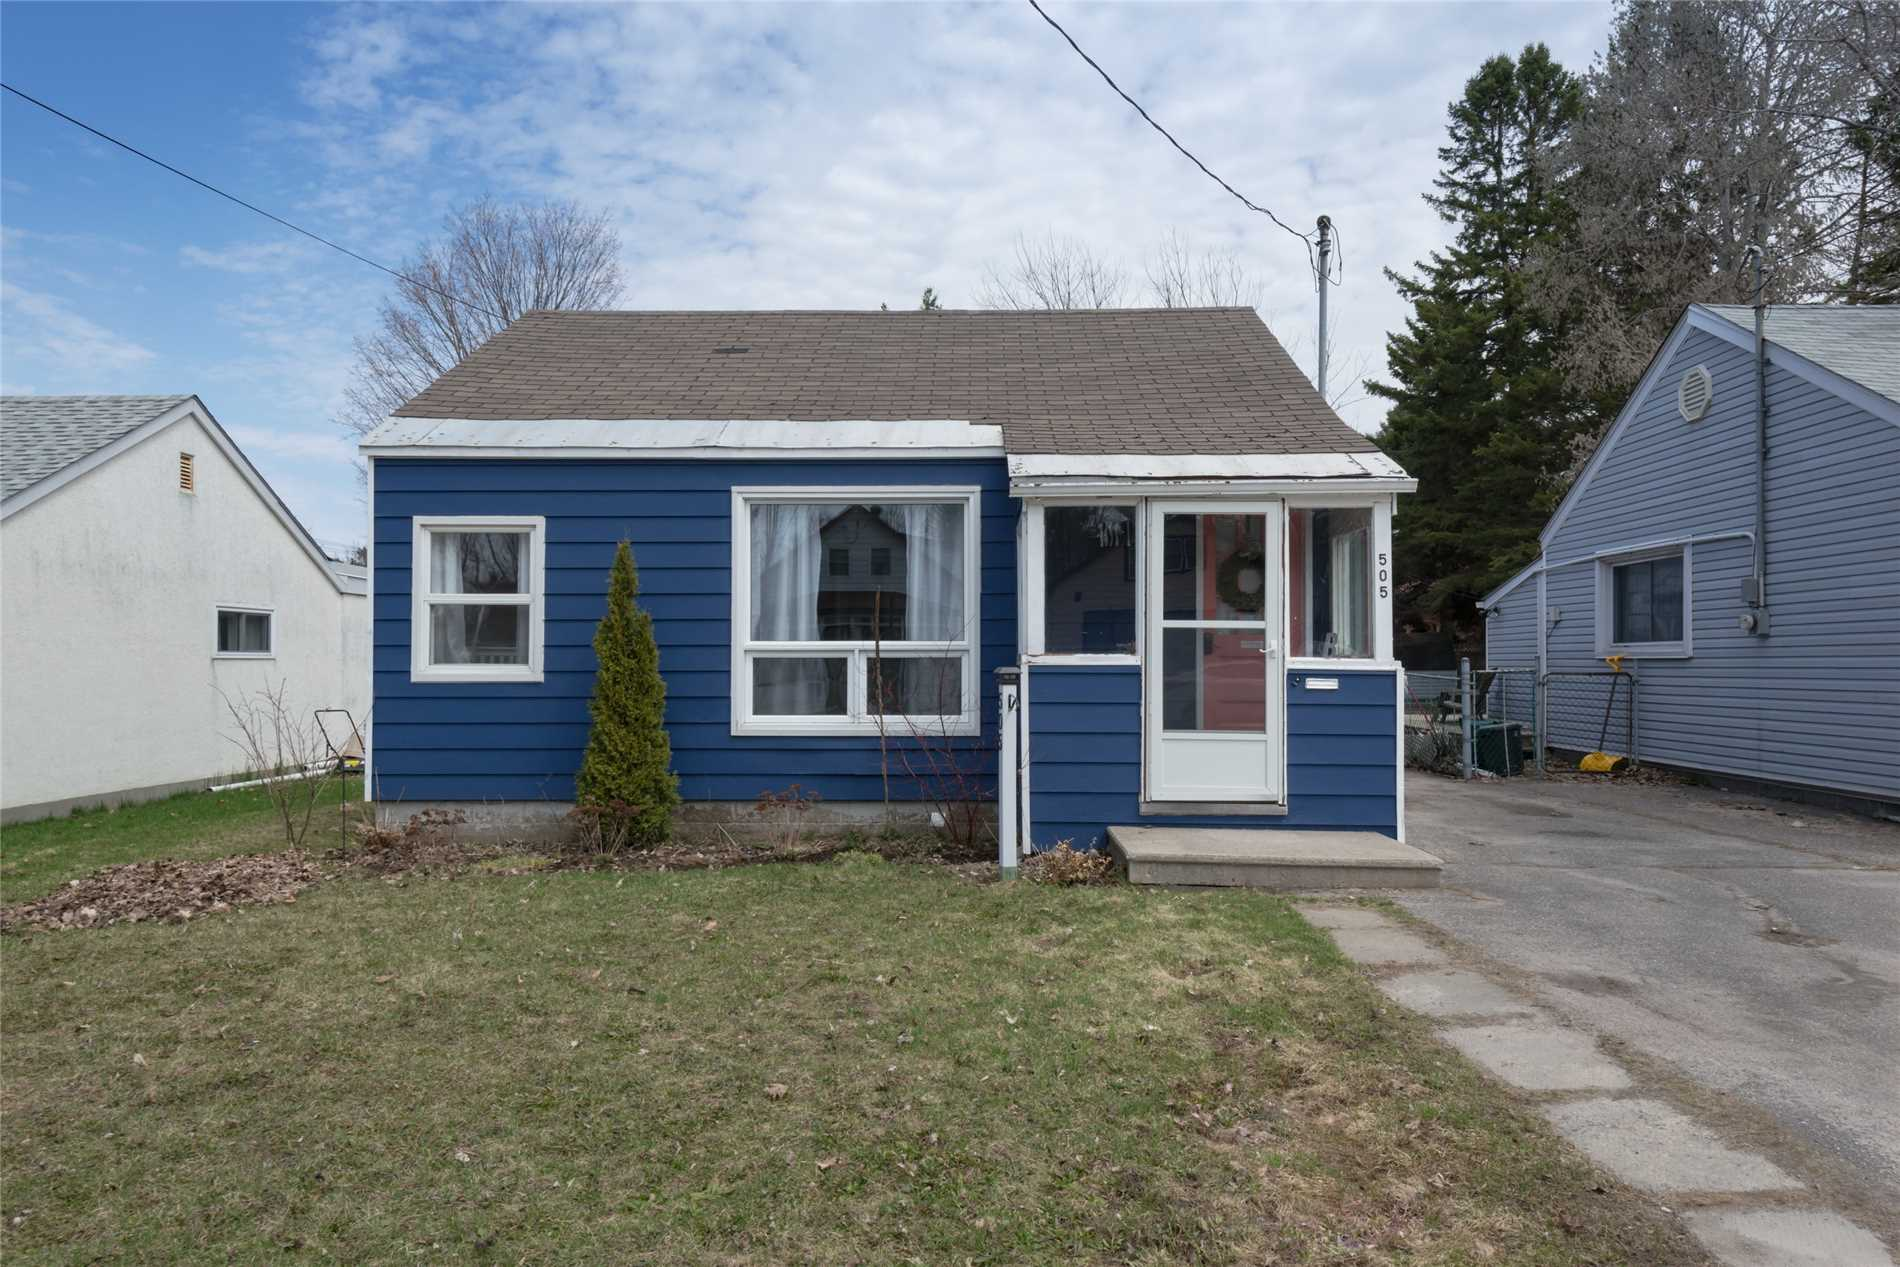 pictures of house for sale MLS: S4427977 located at 505 Russell St, Midland L4R 3B5